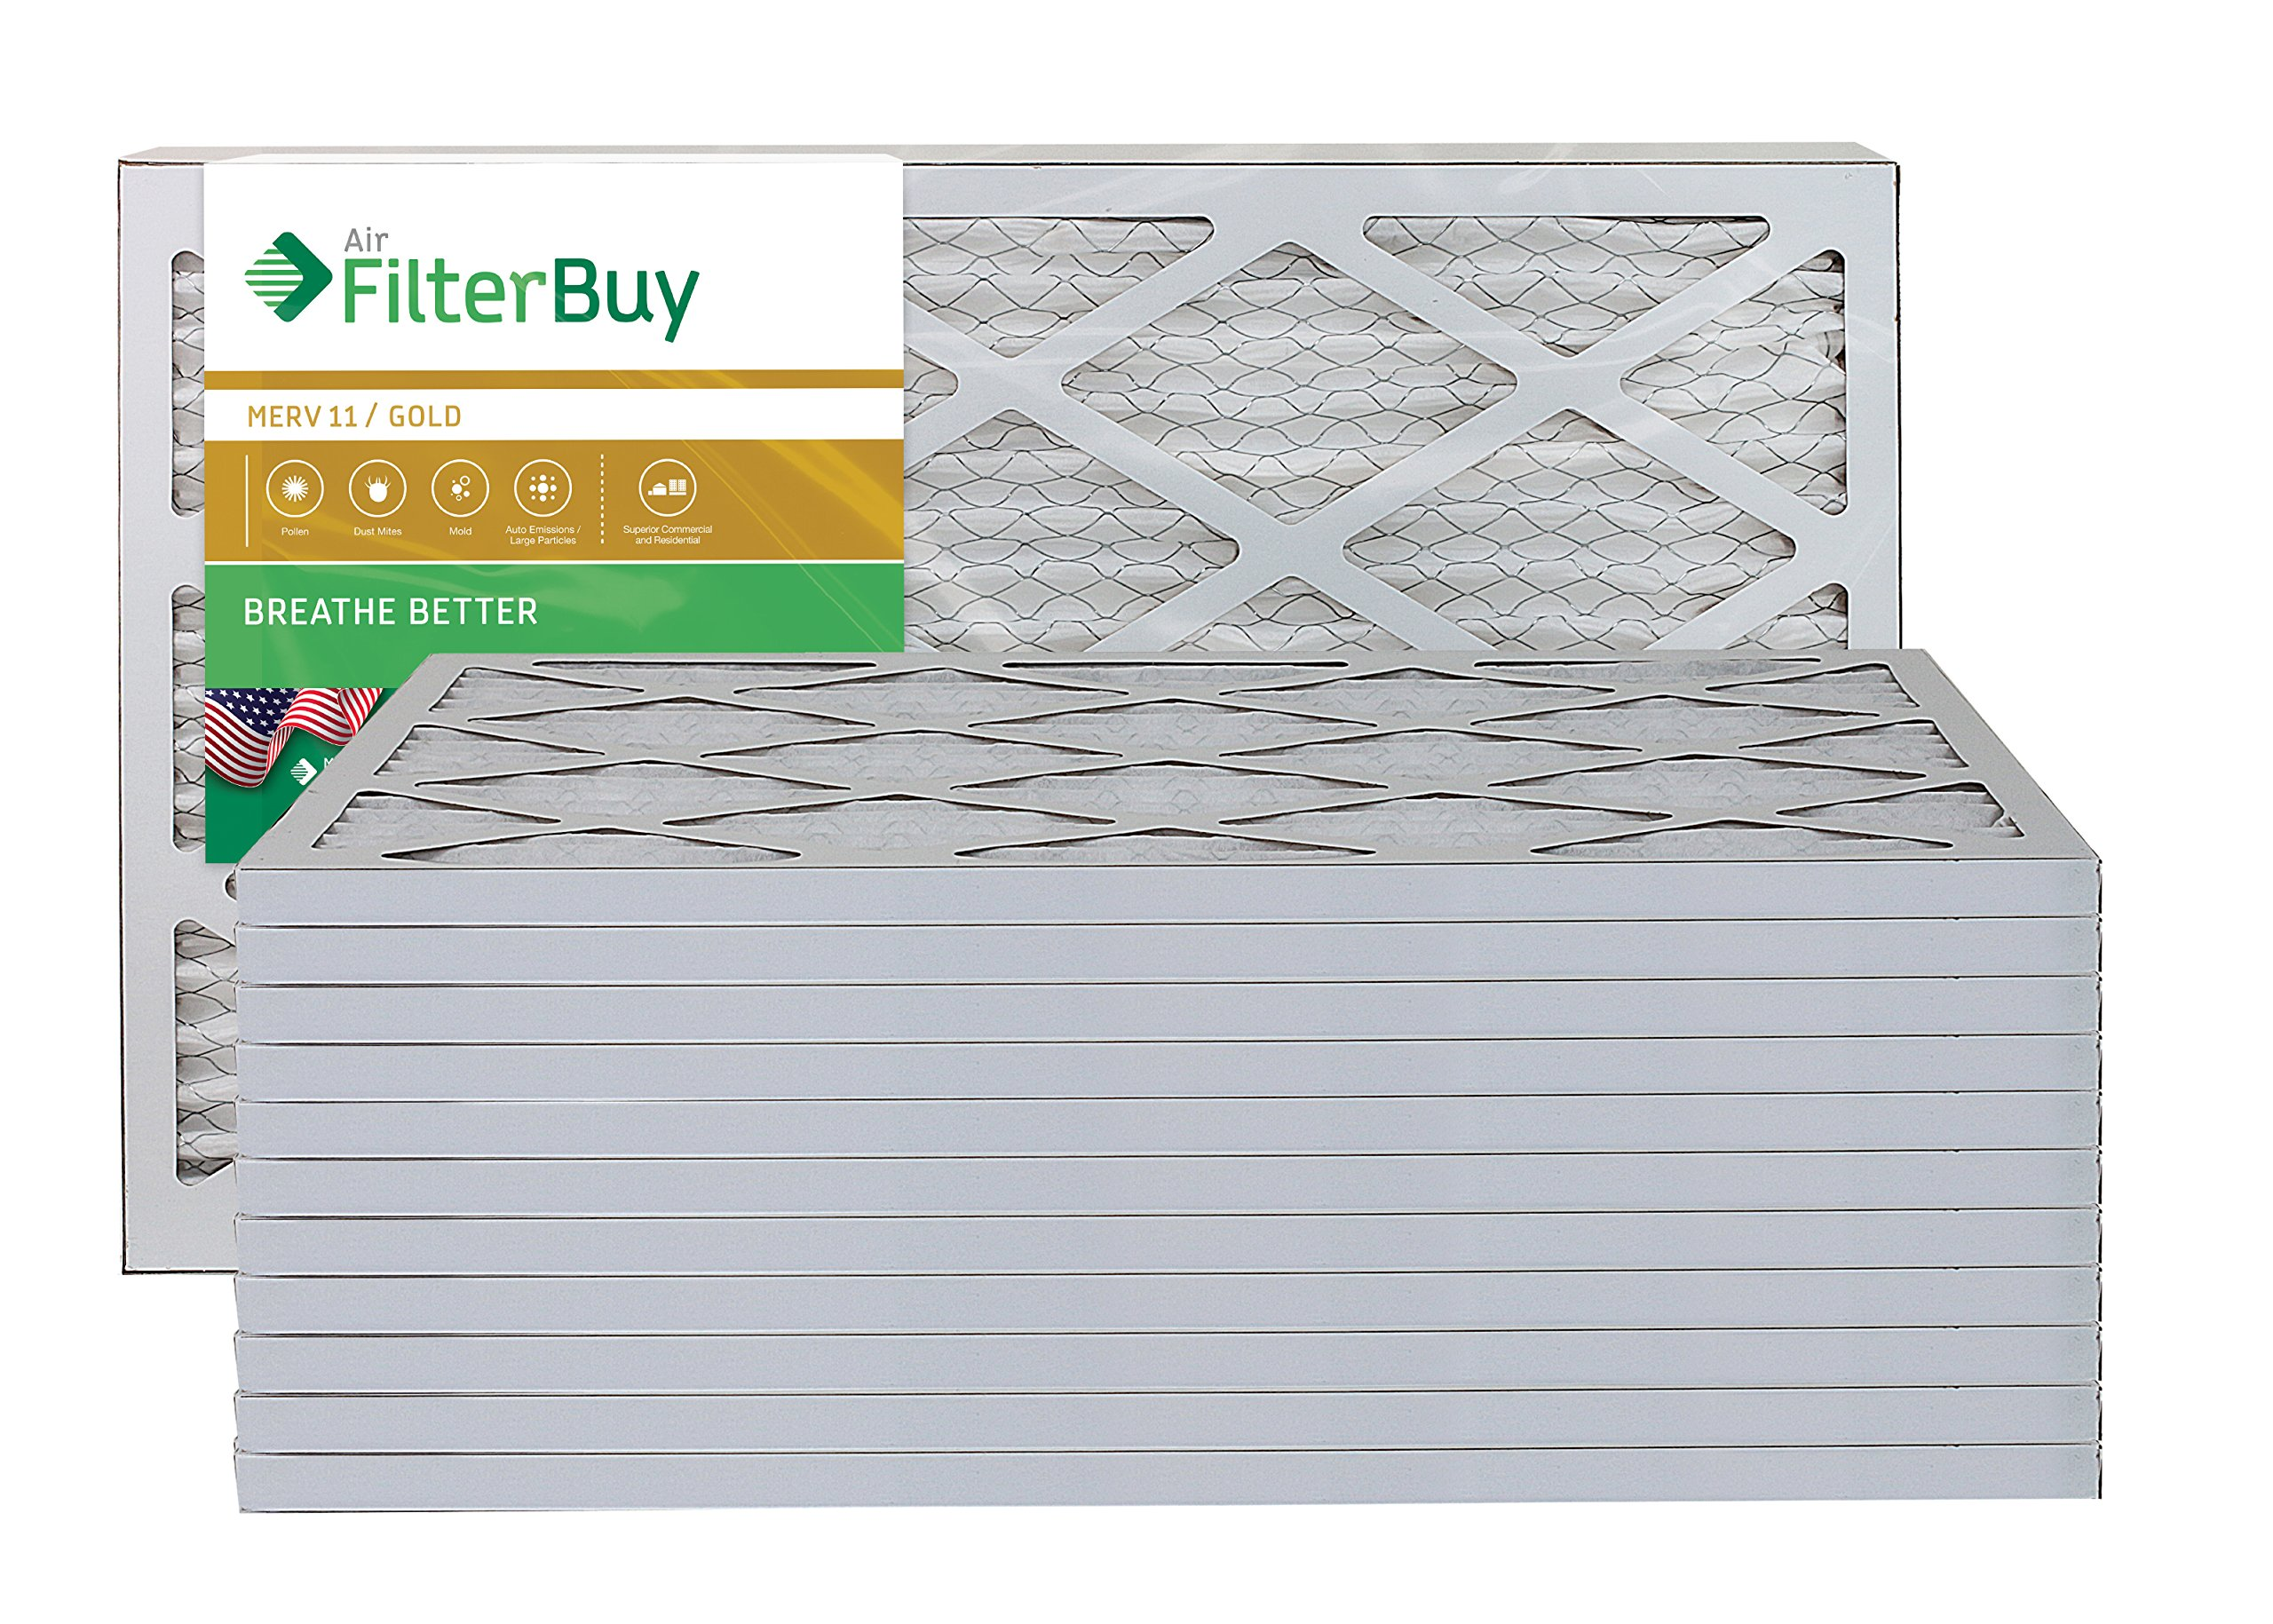 AFB Gold MERV 11 14x24x1 Pleated AC Furnace Air Filter. Pack of 12 Filters. 100% produced in the USA.